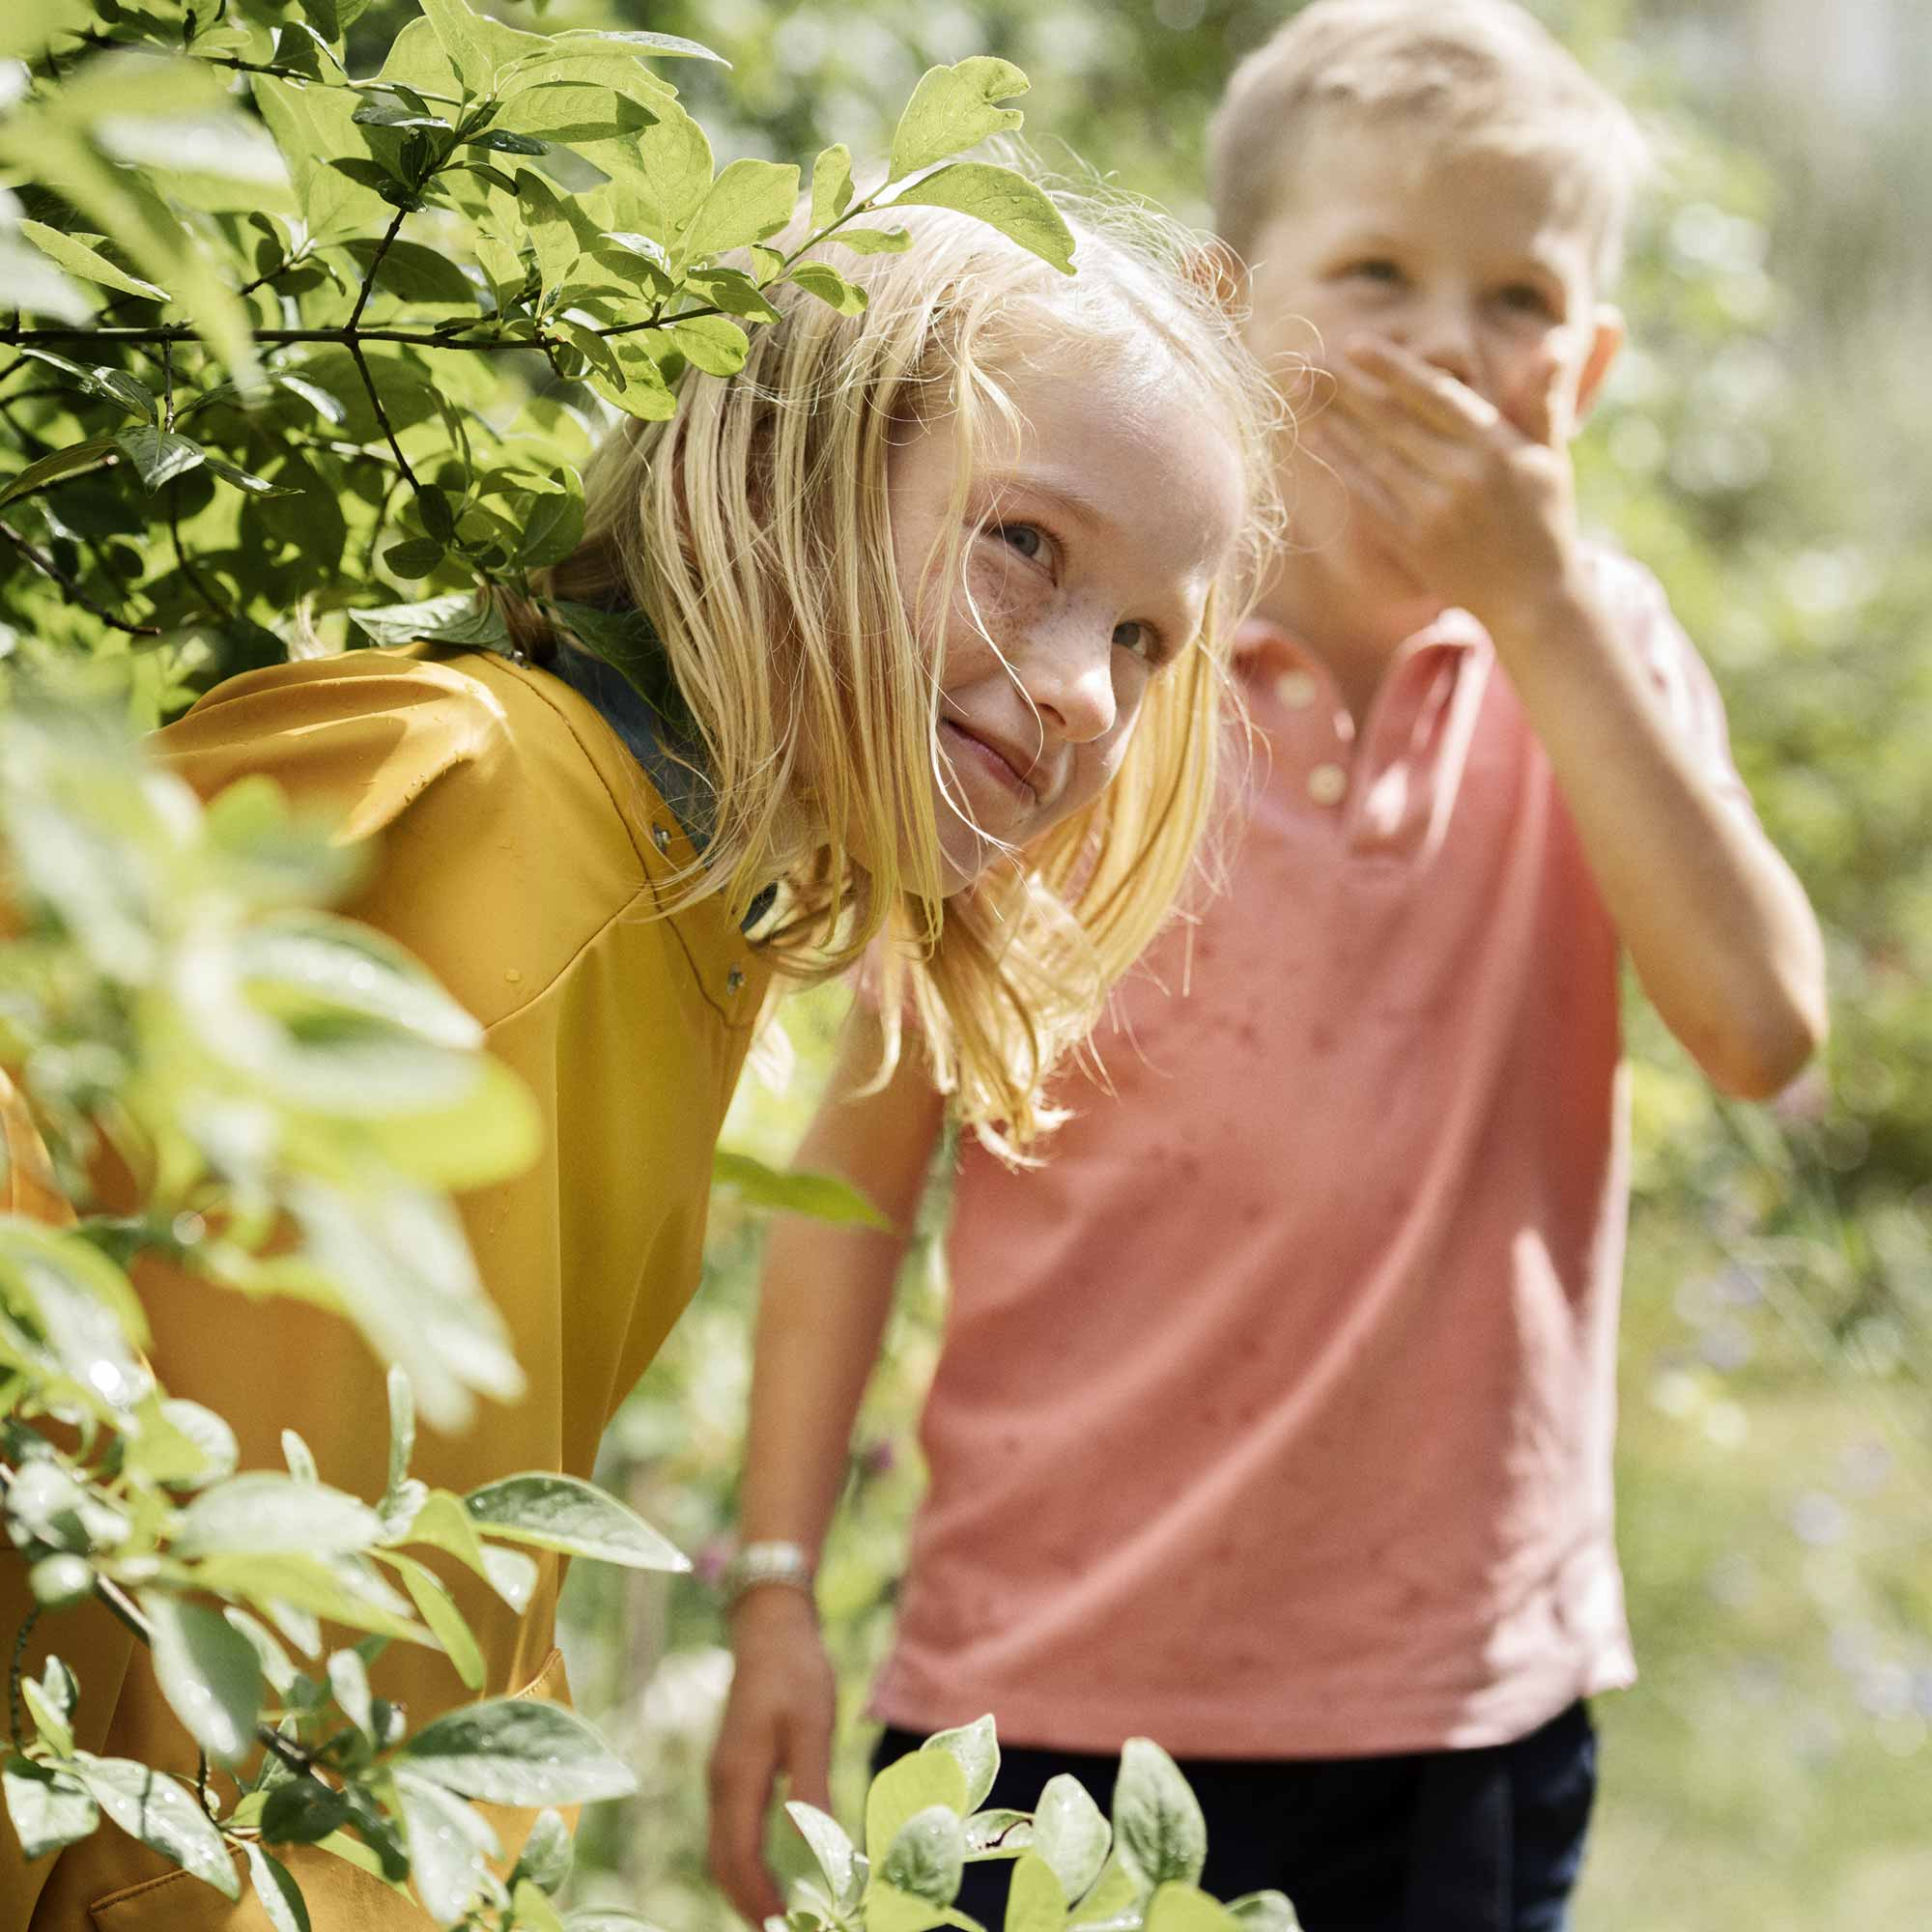 Two kids hiding in the bushes